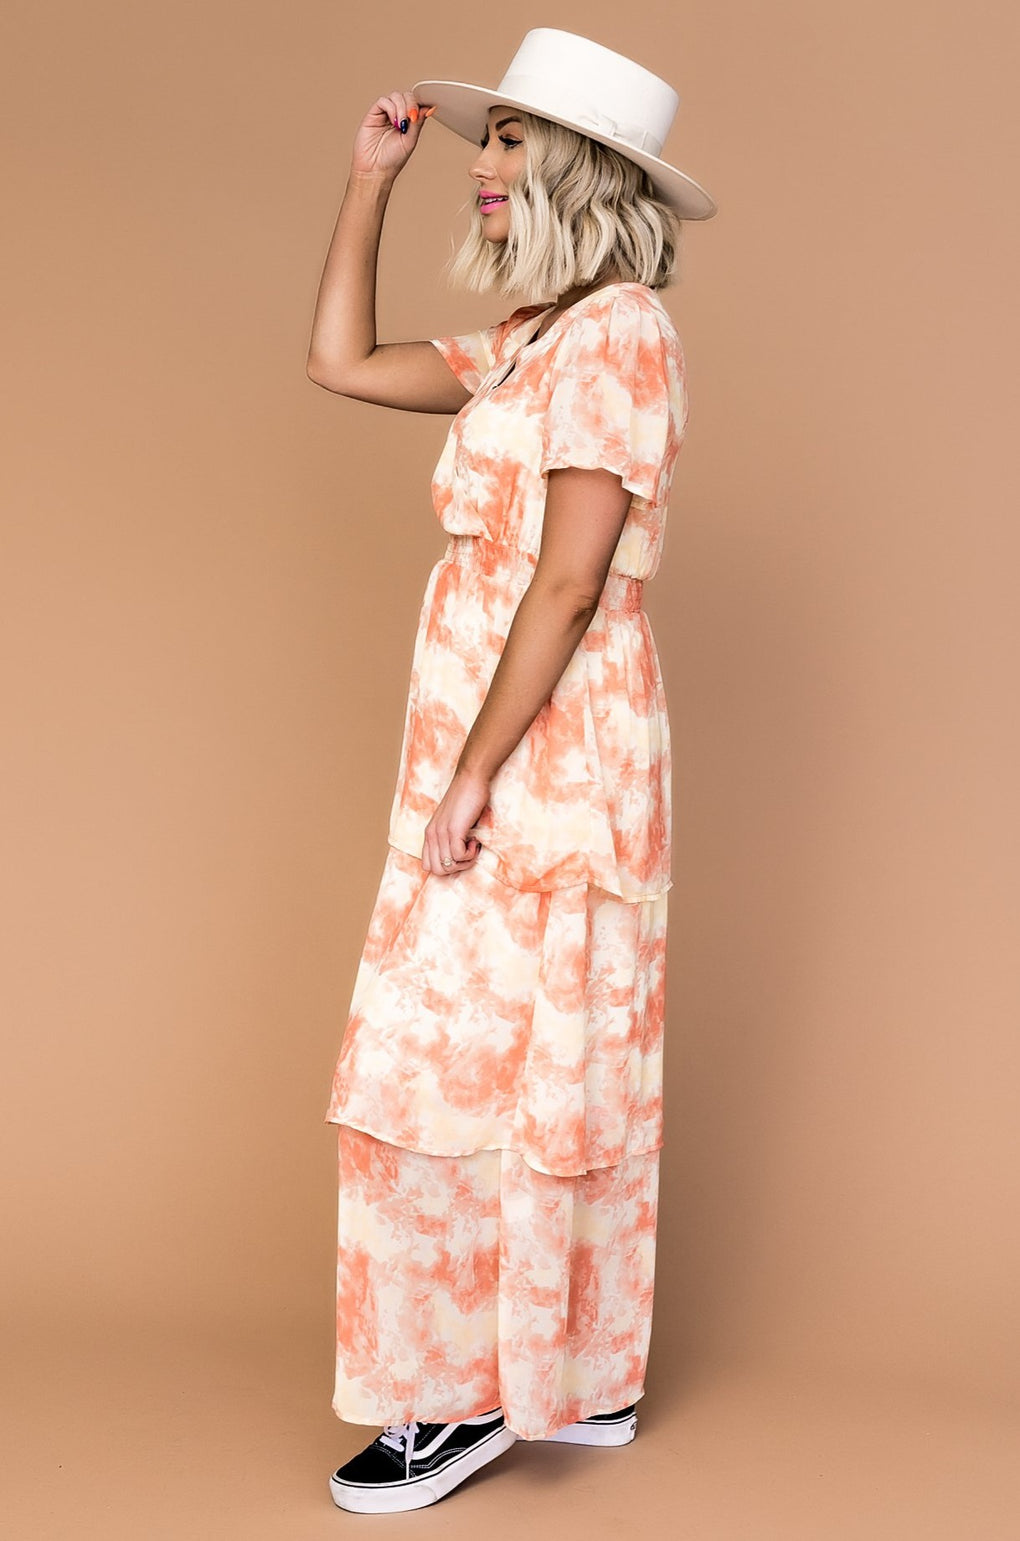 Sunrise Sunset Tie Dye Maxi Dress